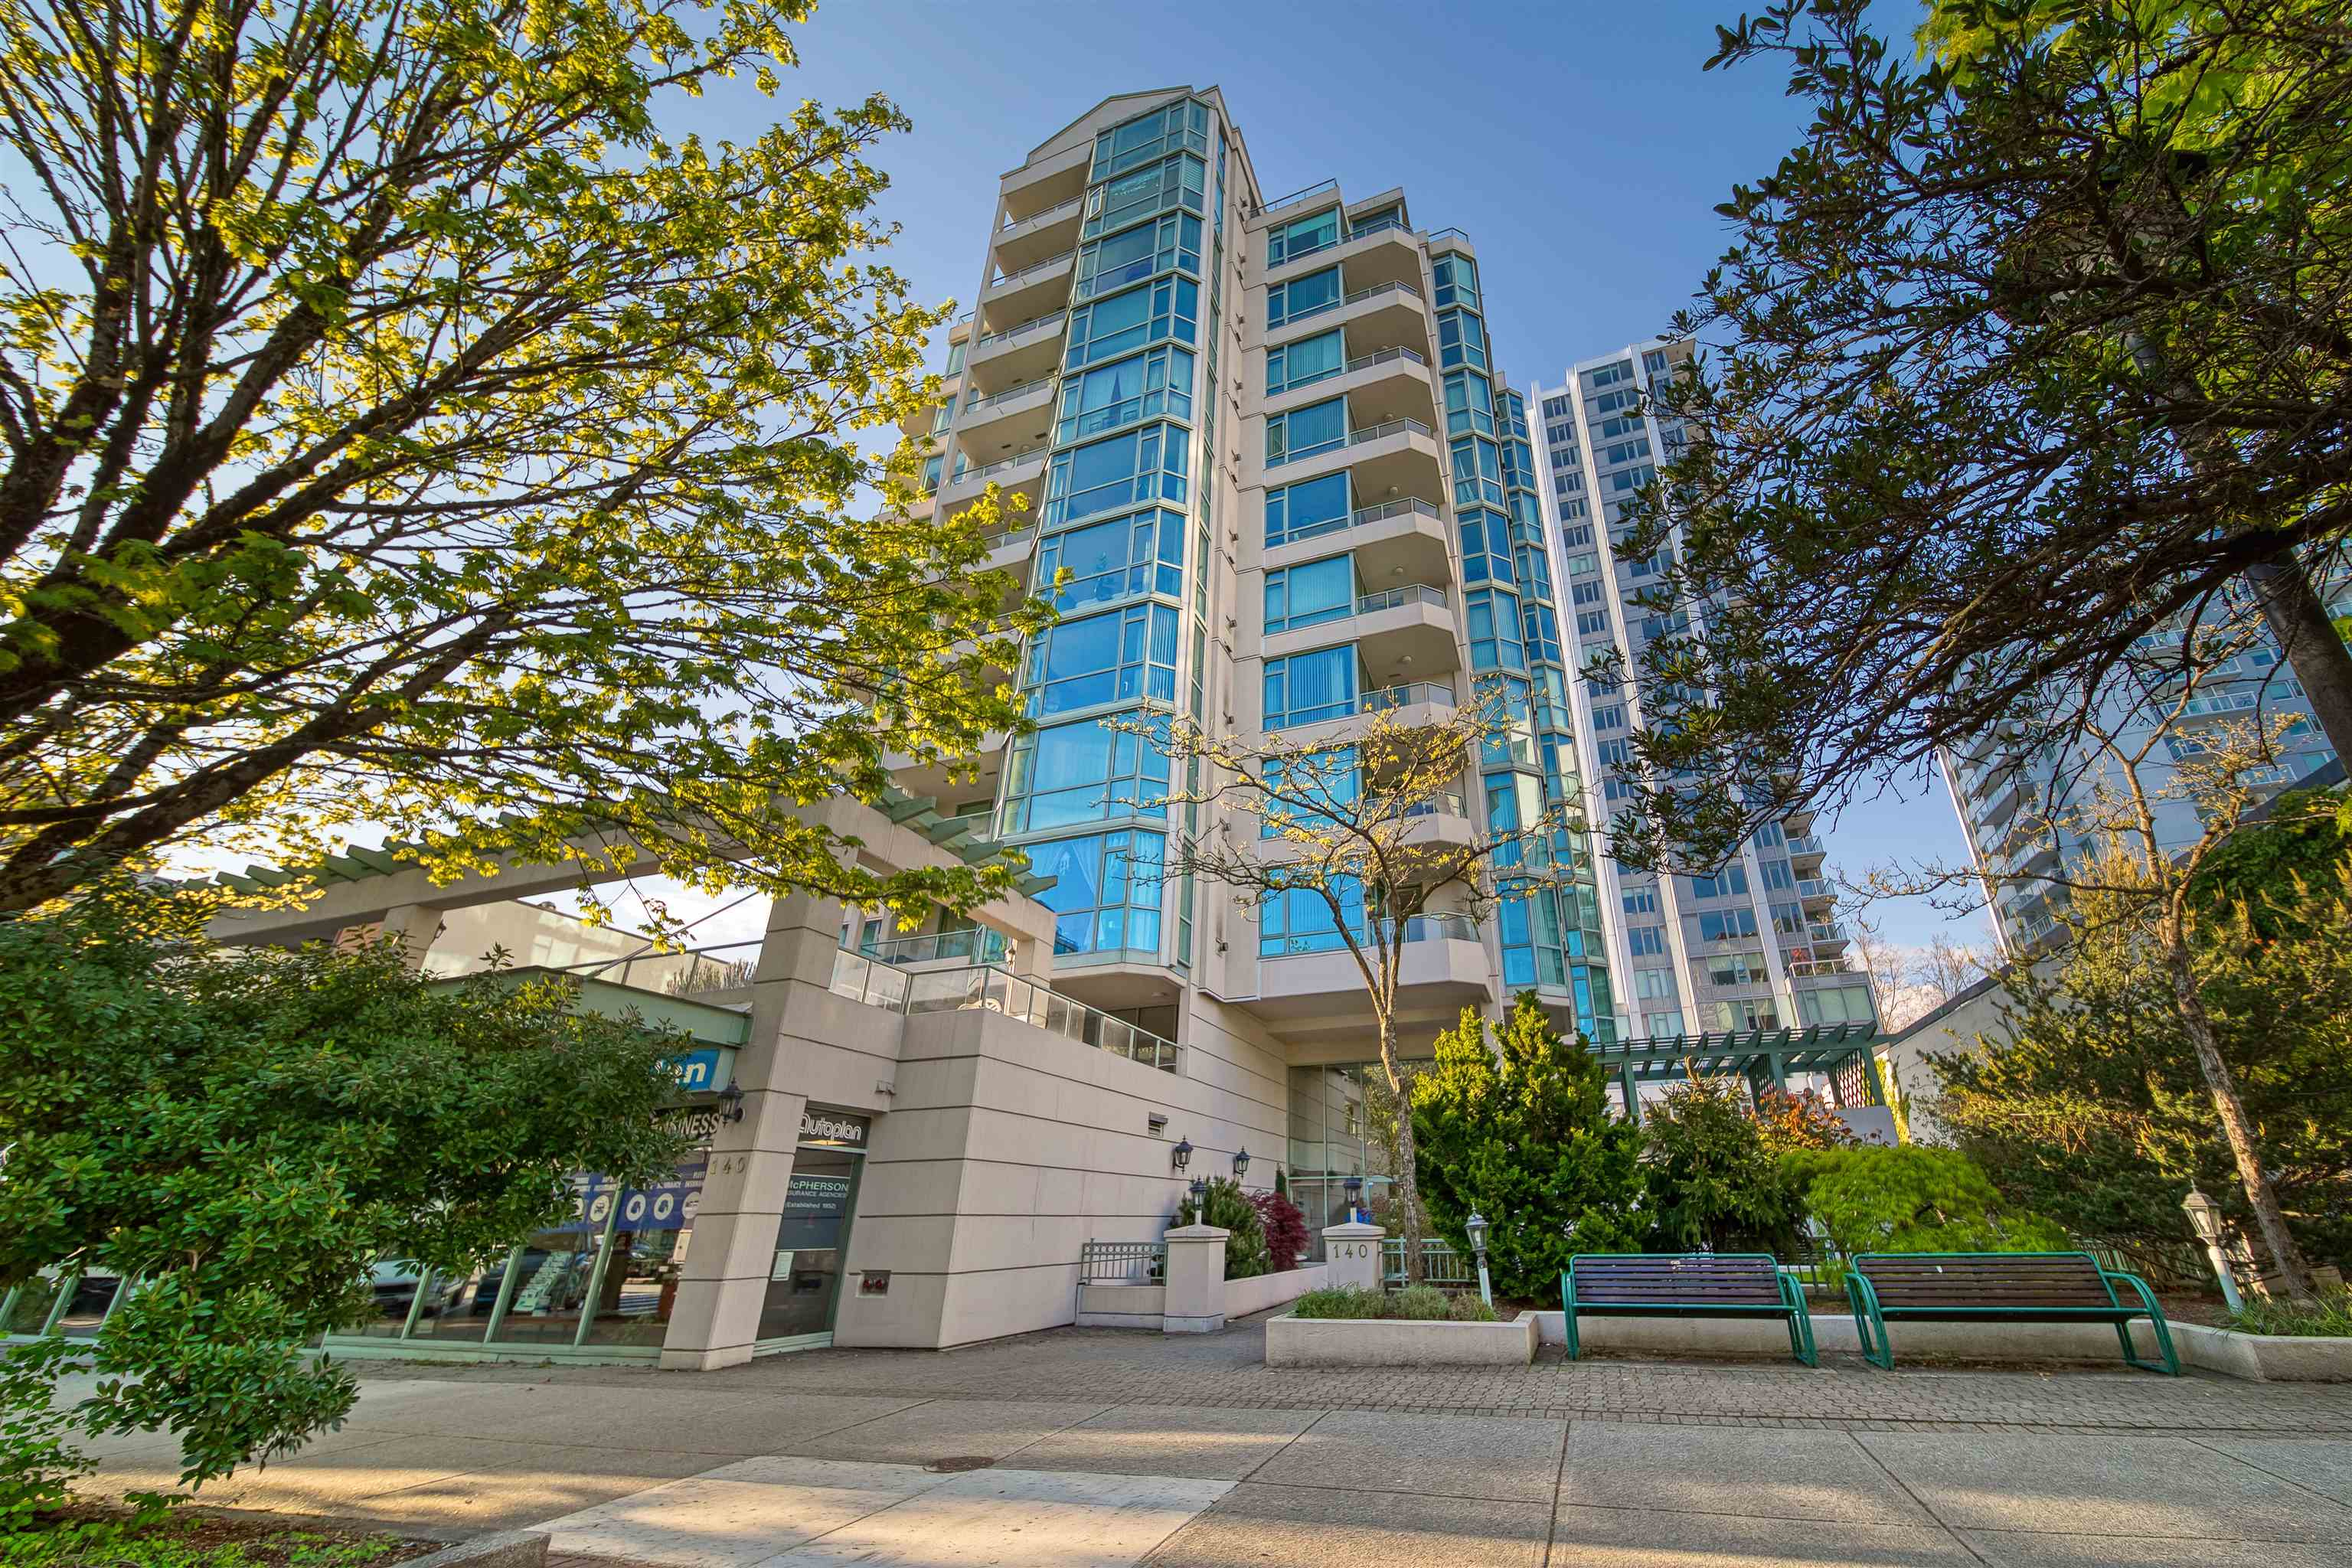 303 140 E 14TH STREET - Central Lonsdale Apartment/Condo for sale, 1 Bedroom (R2618094) - #1